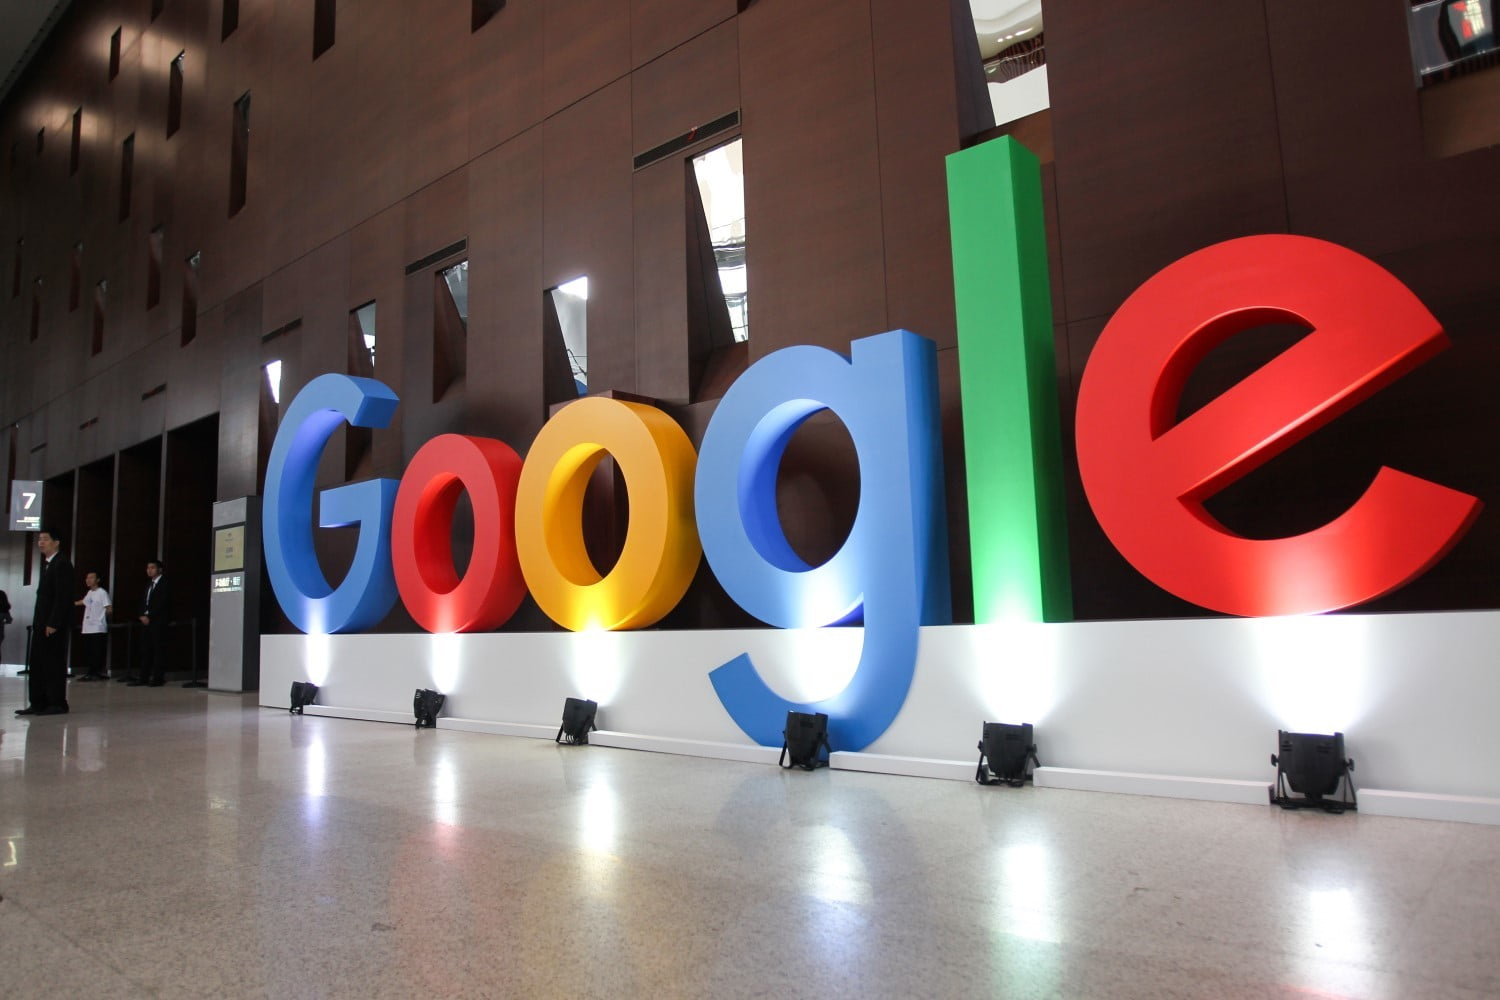 Google will charge law enforcement and government agencies to access user data